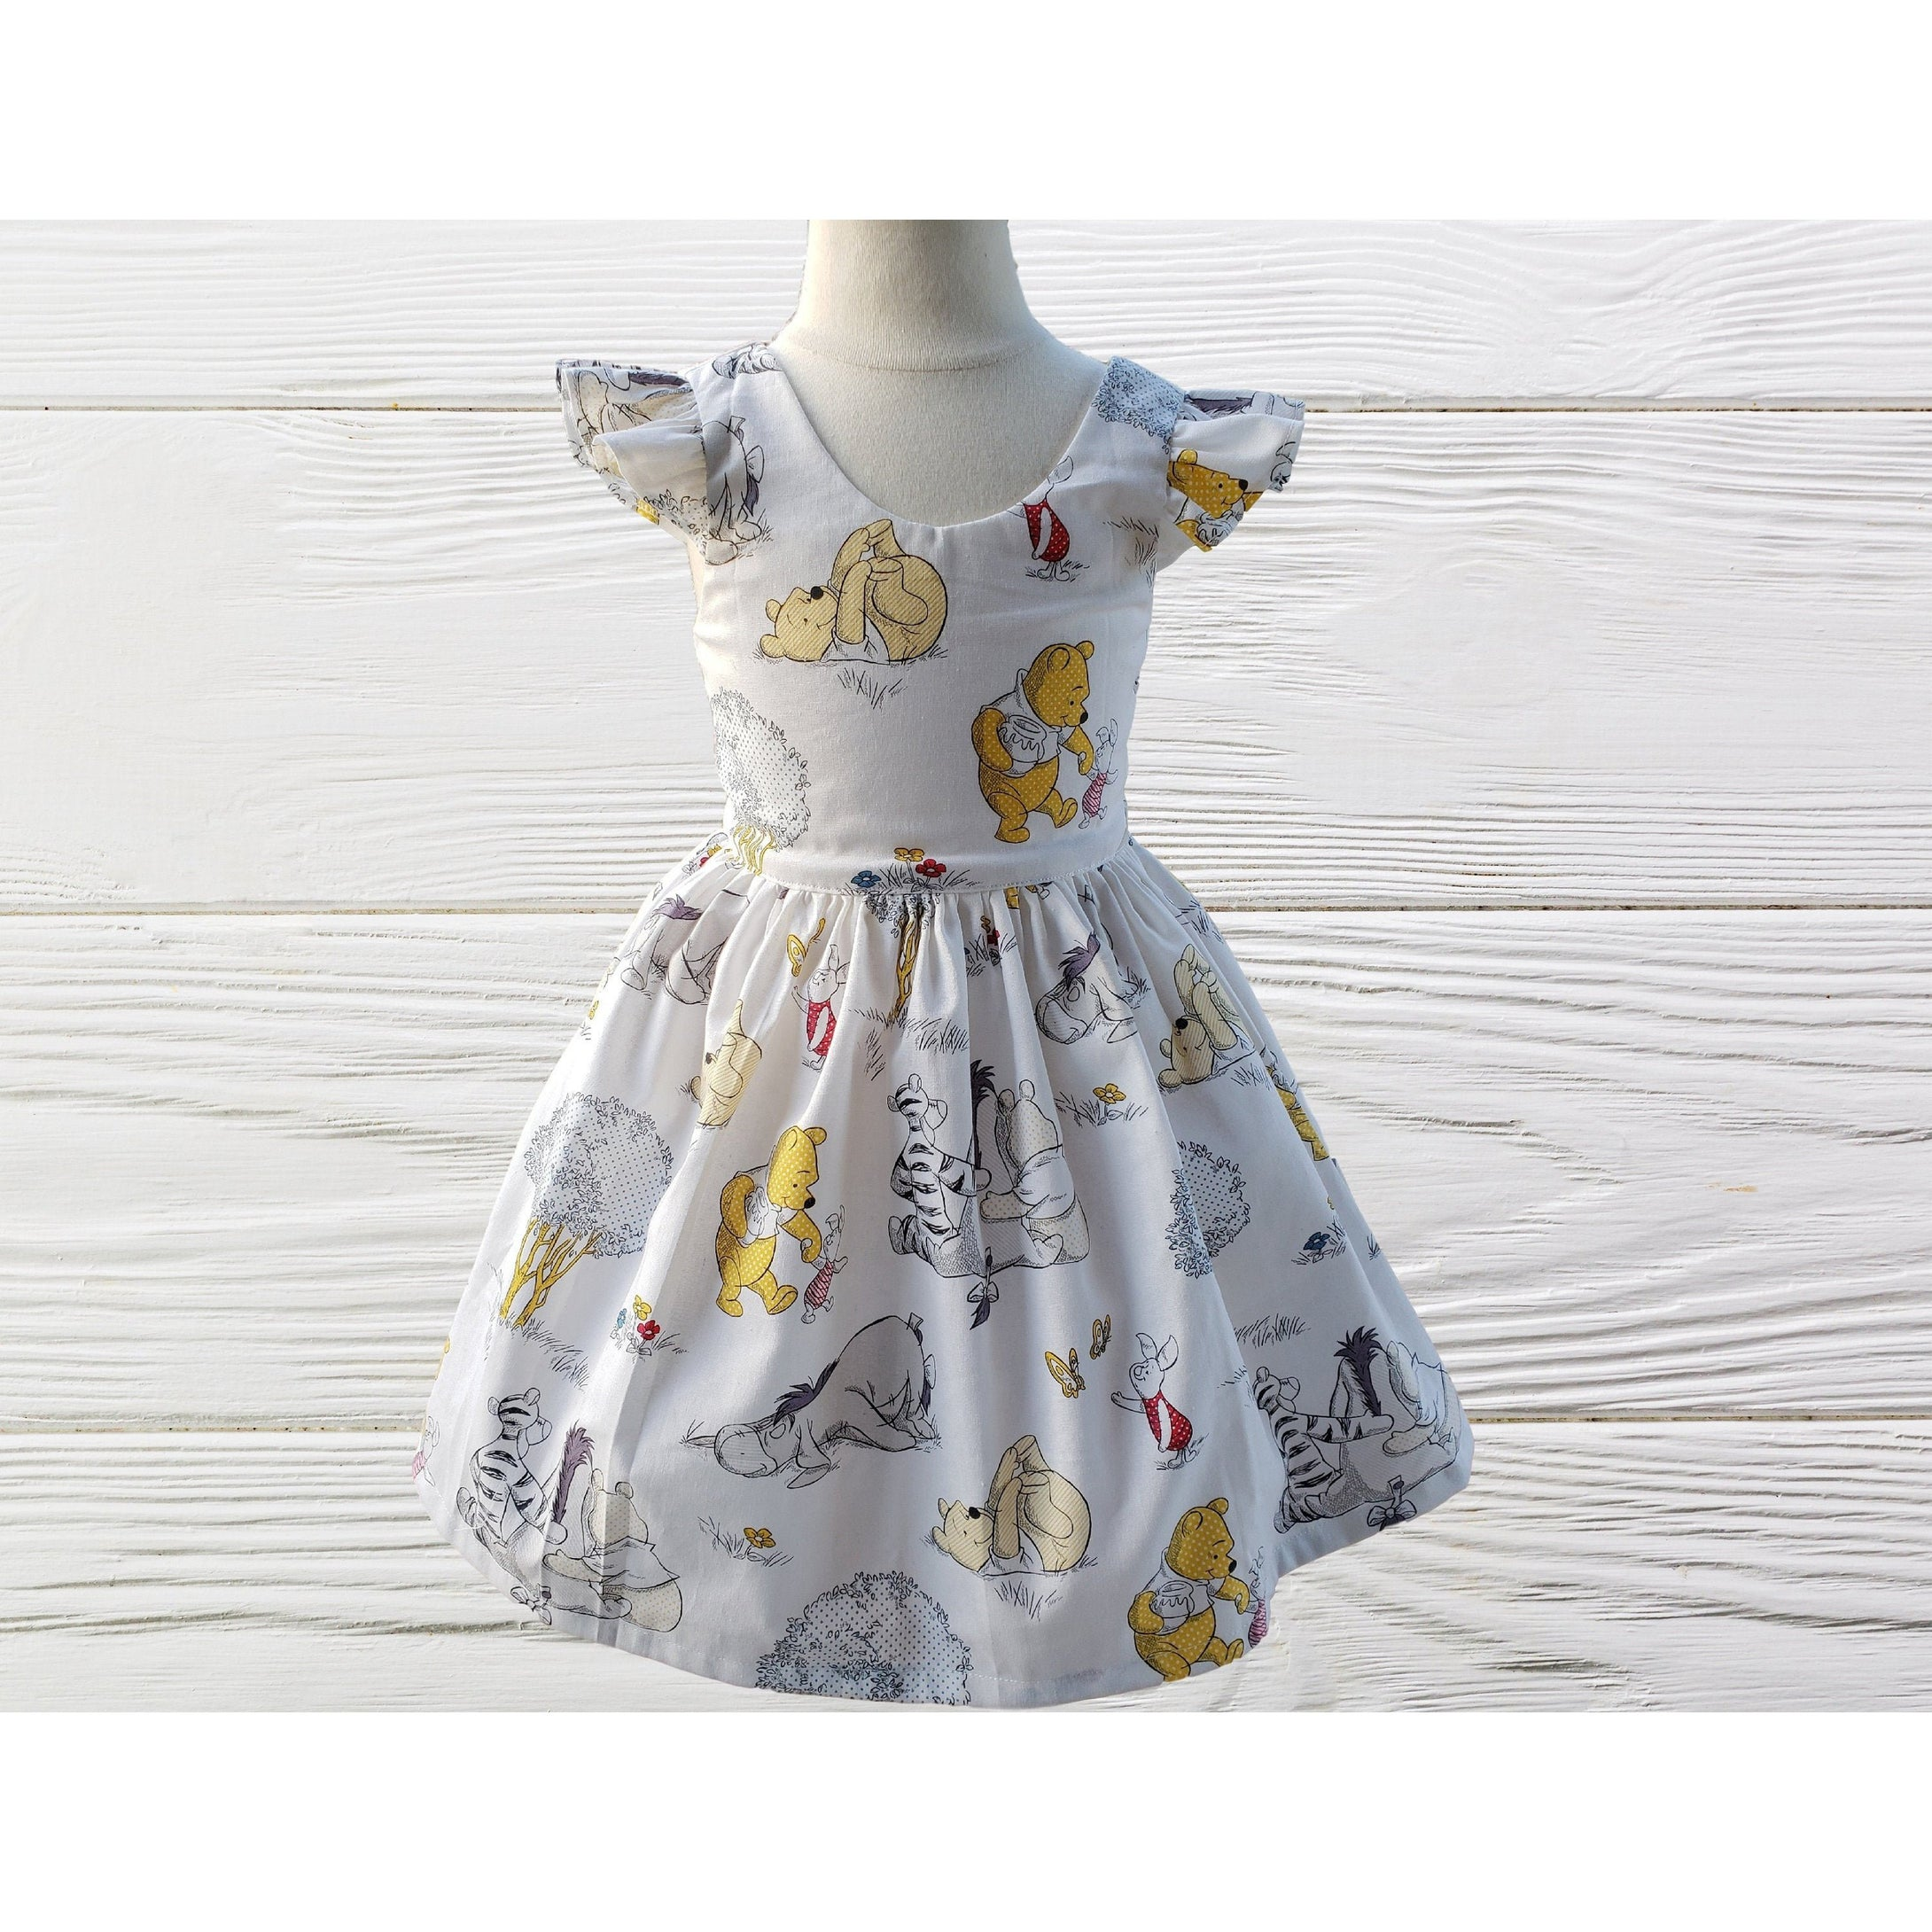 POOH BEAR DRESS Birthday Party Dress - Cute Princess Dress Baby Girl Outfits